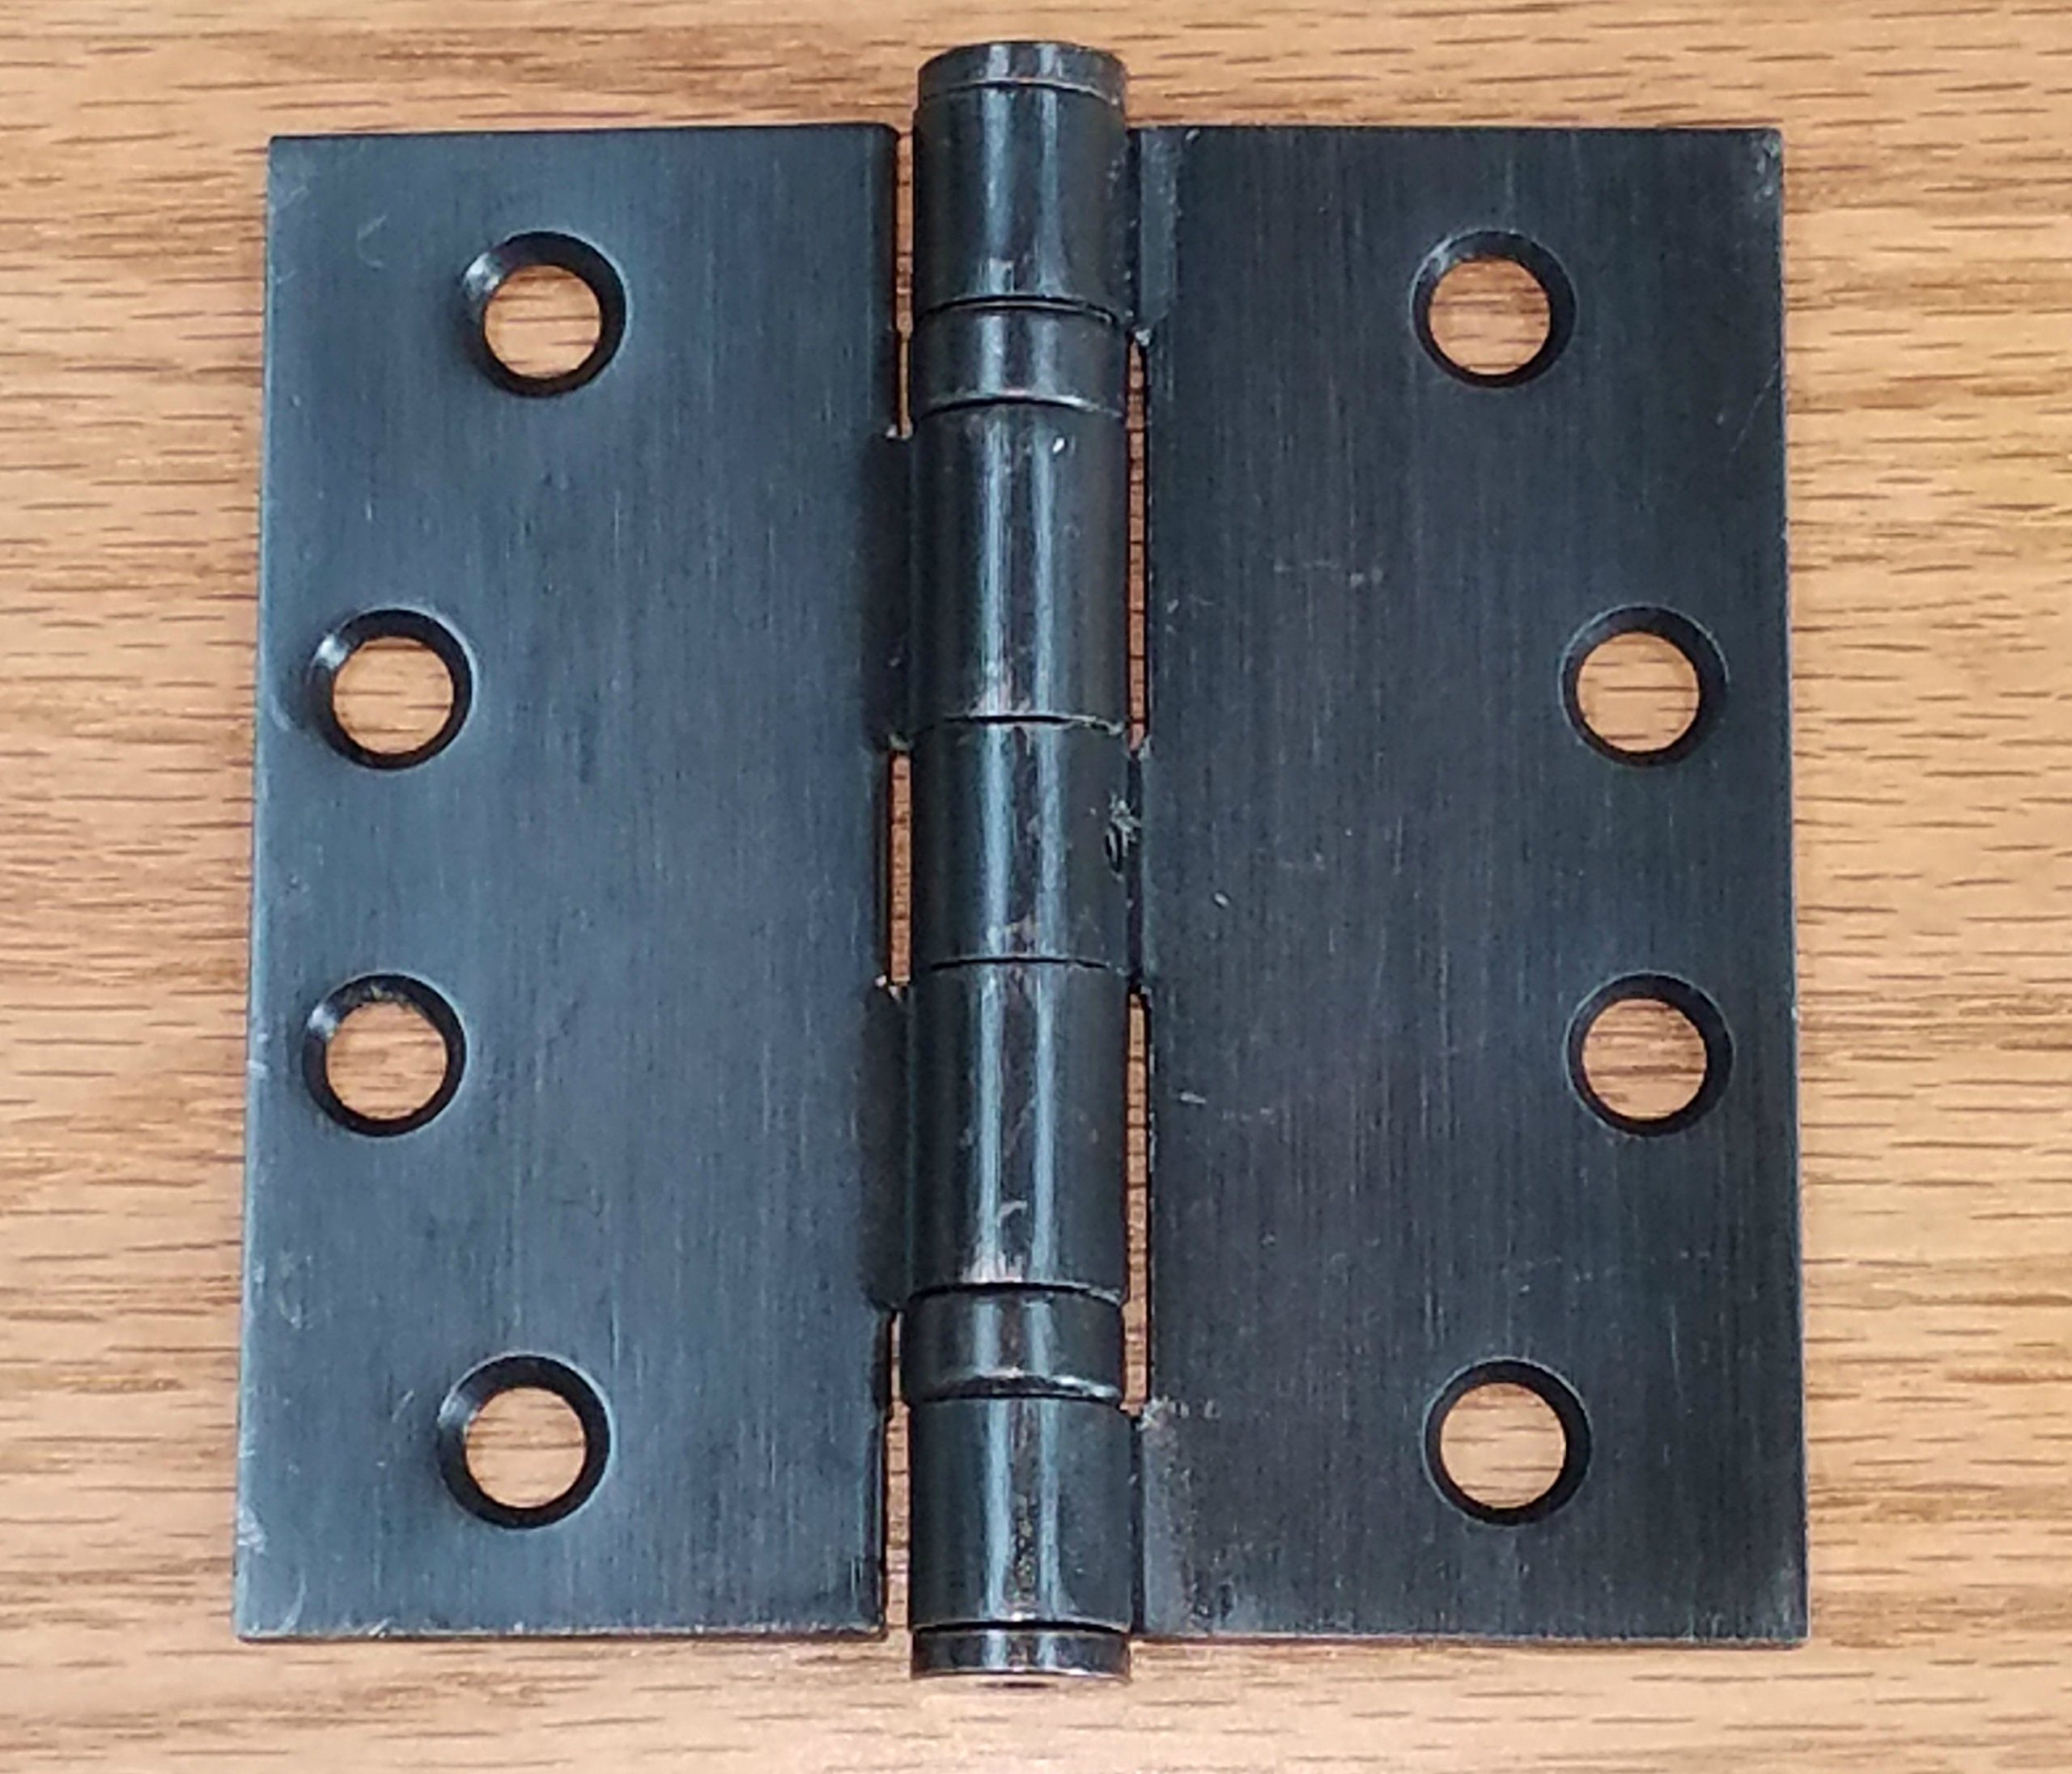 Oil Rubbed Bronze Commercial Door Hinges Ball Bearing - 4 Inch Square - 2 Pack - Non-Removable Pin